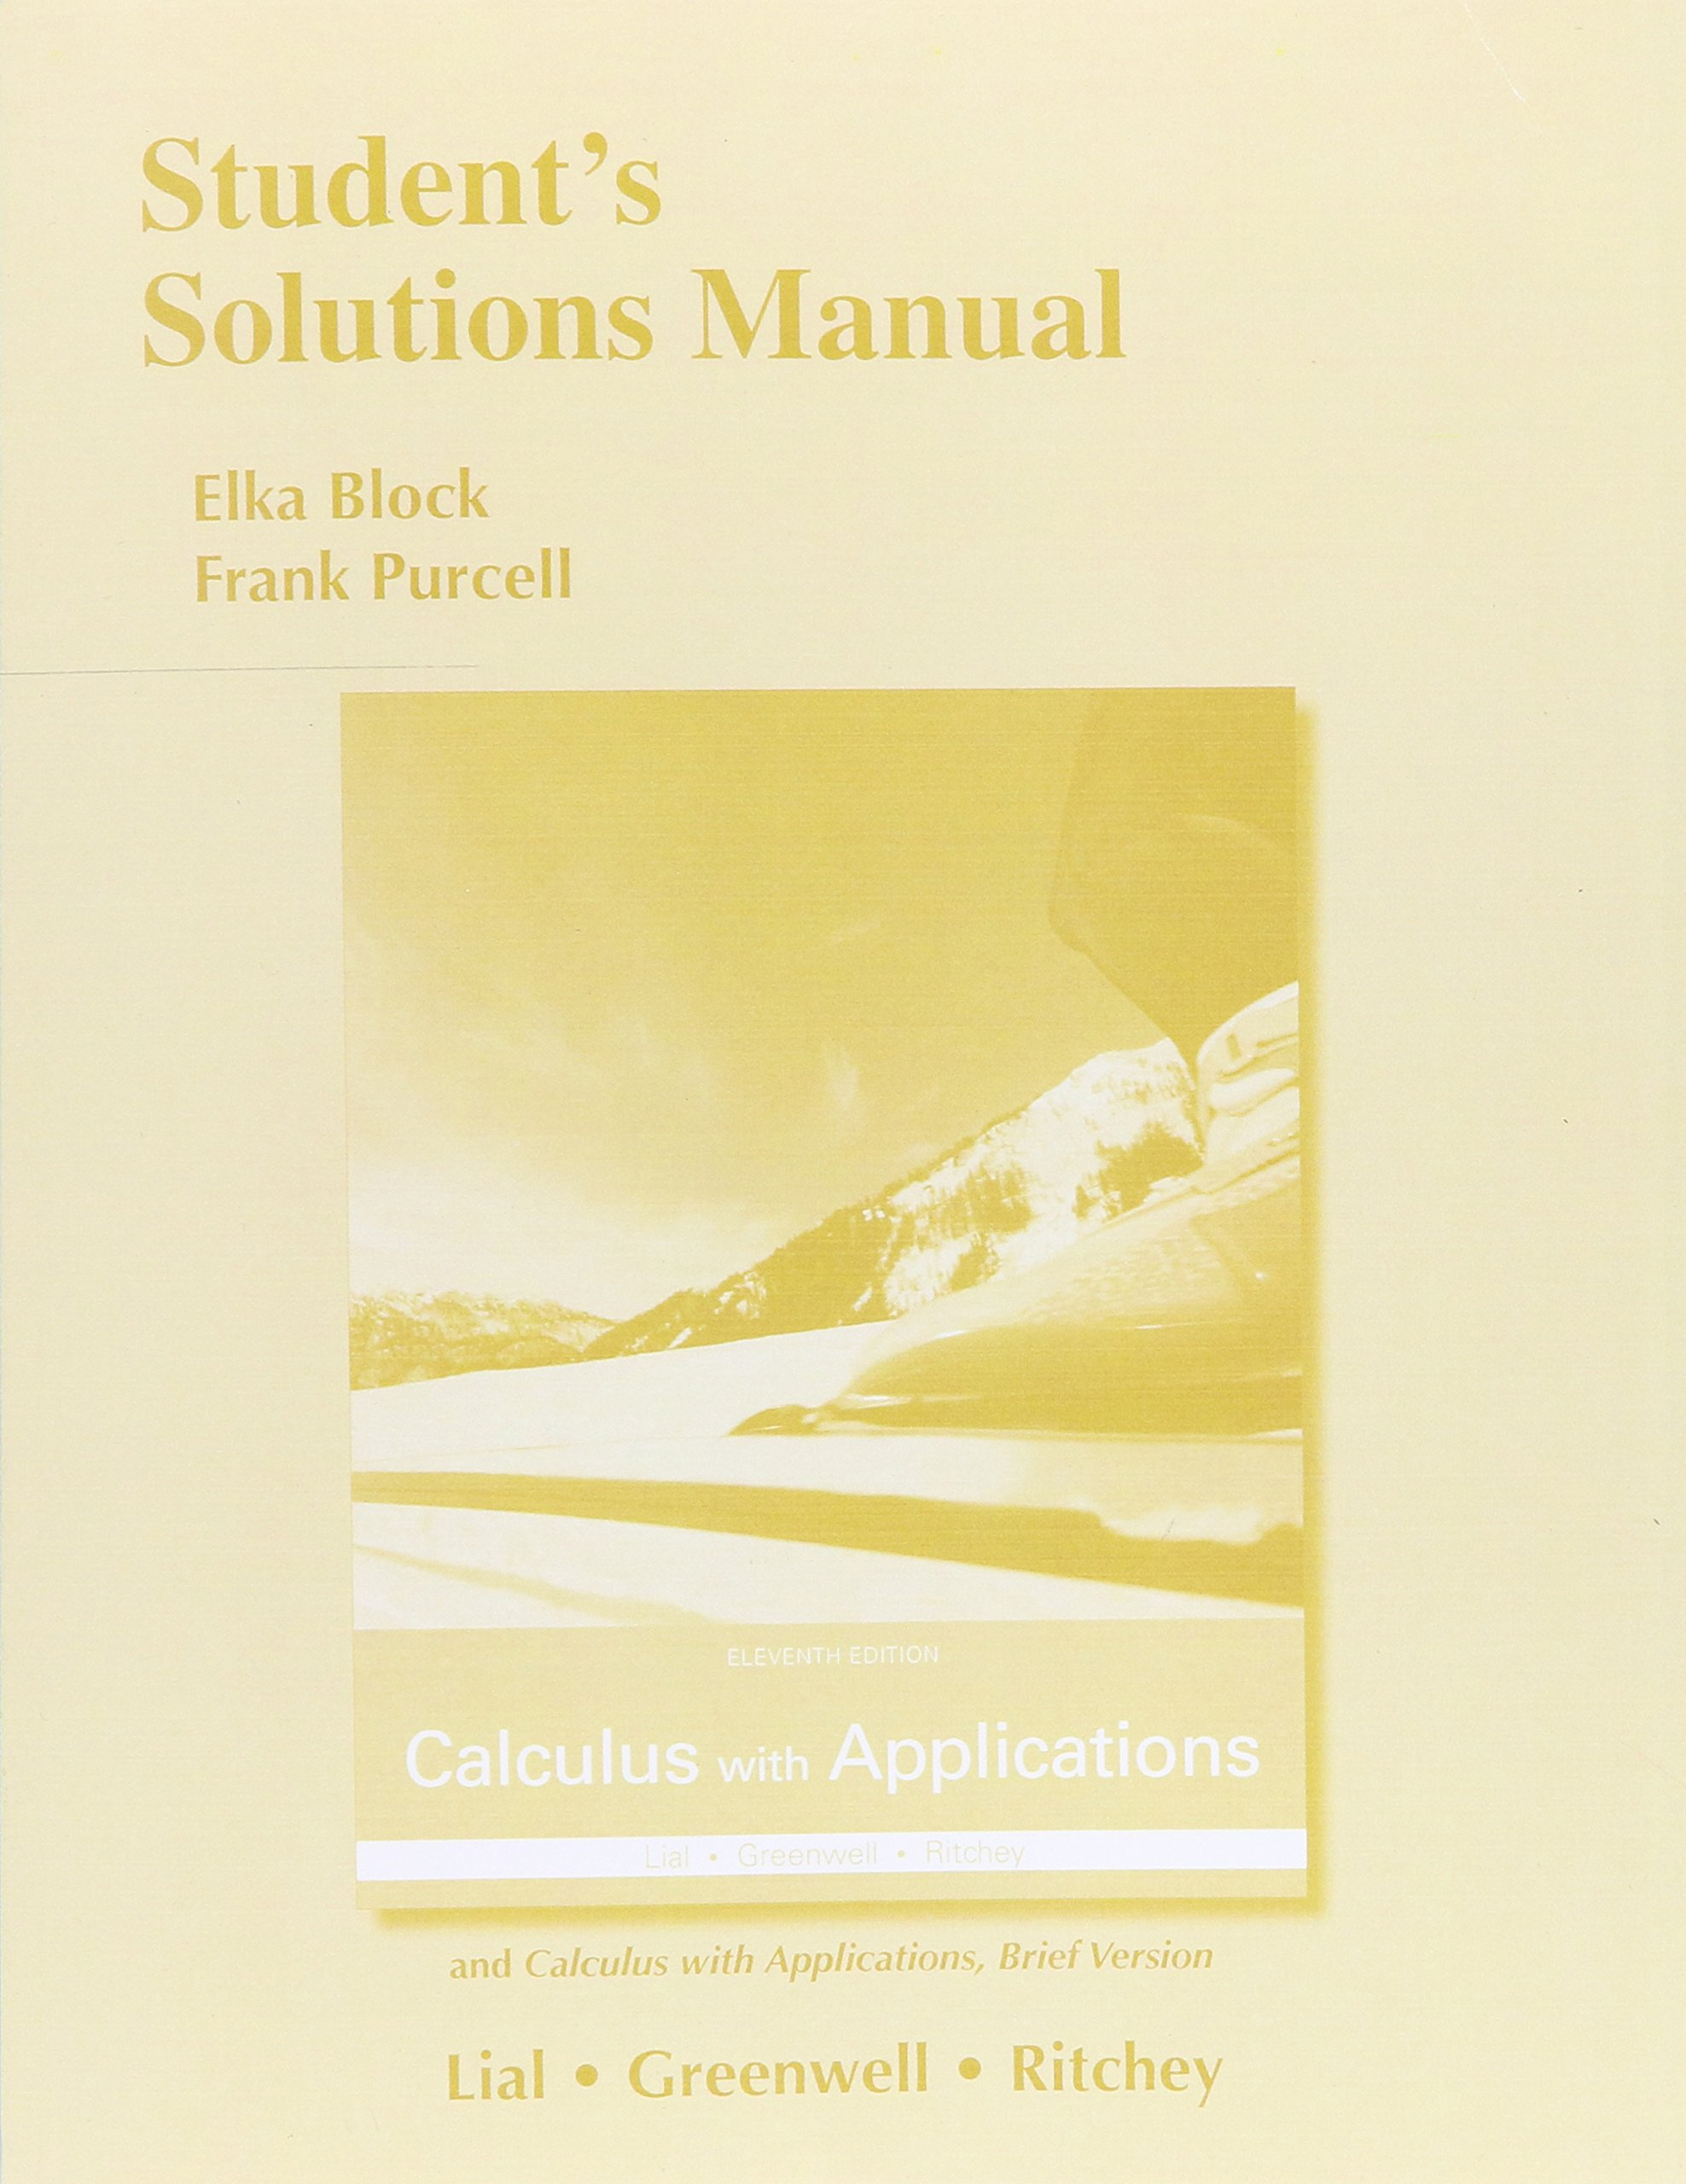 Student's Solutions Manual for Calculus with Applications and Calculus with  Applications, Brief Version: Margaret L. Lial, Raymond N. Greenwell, ...